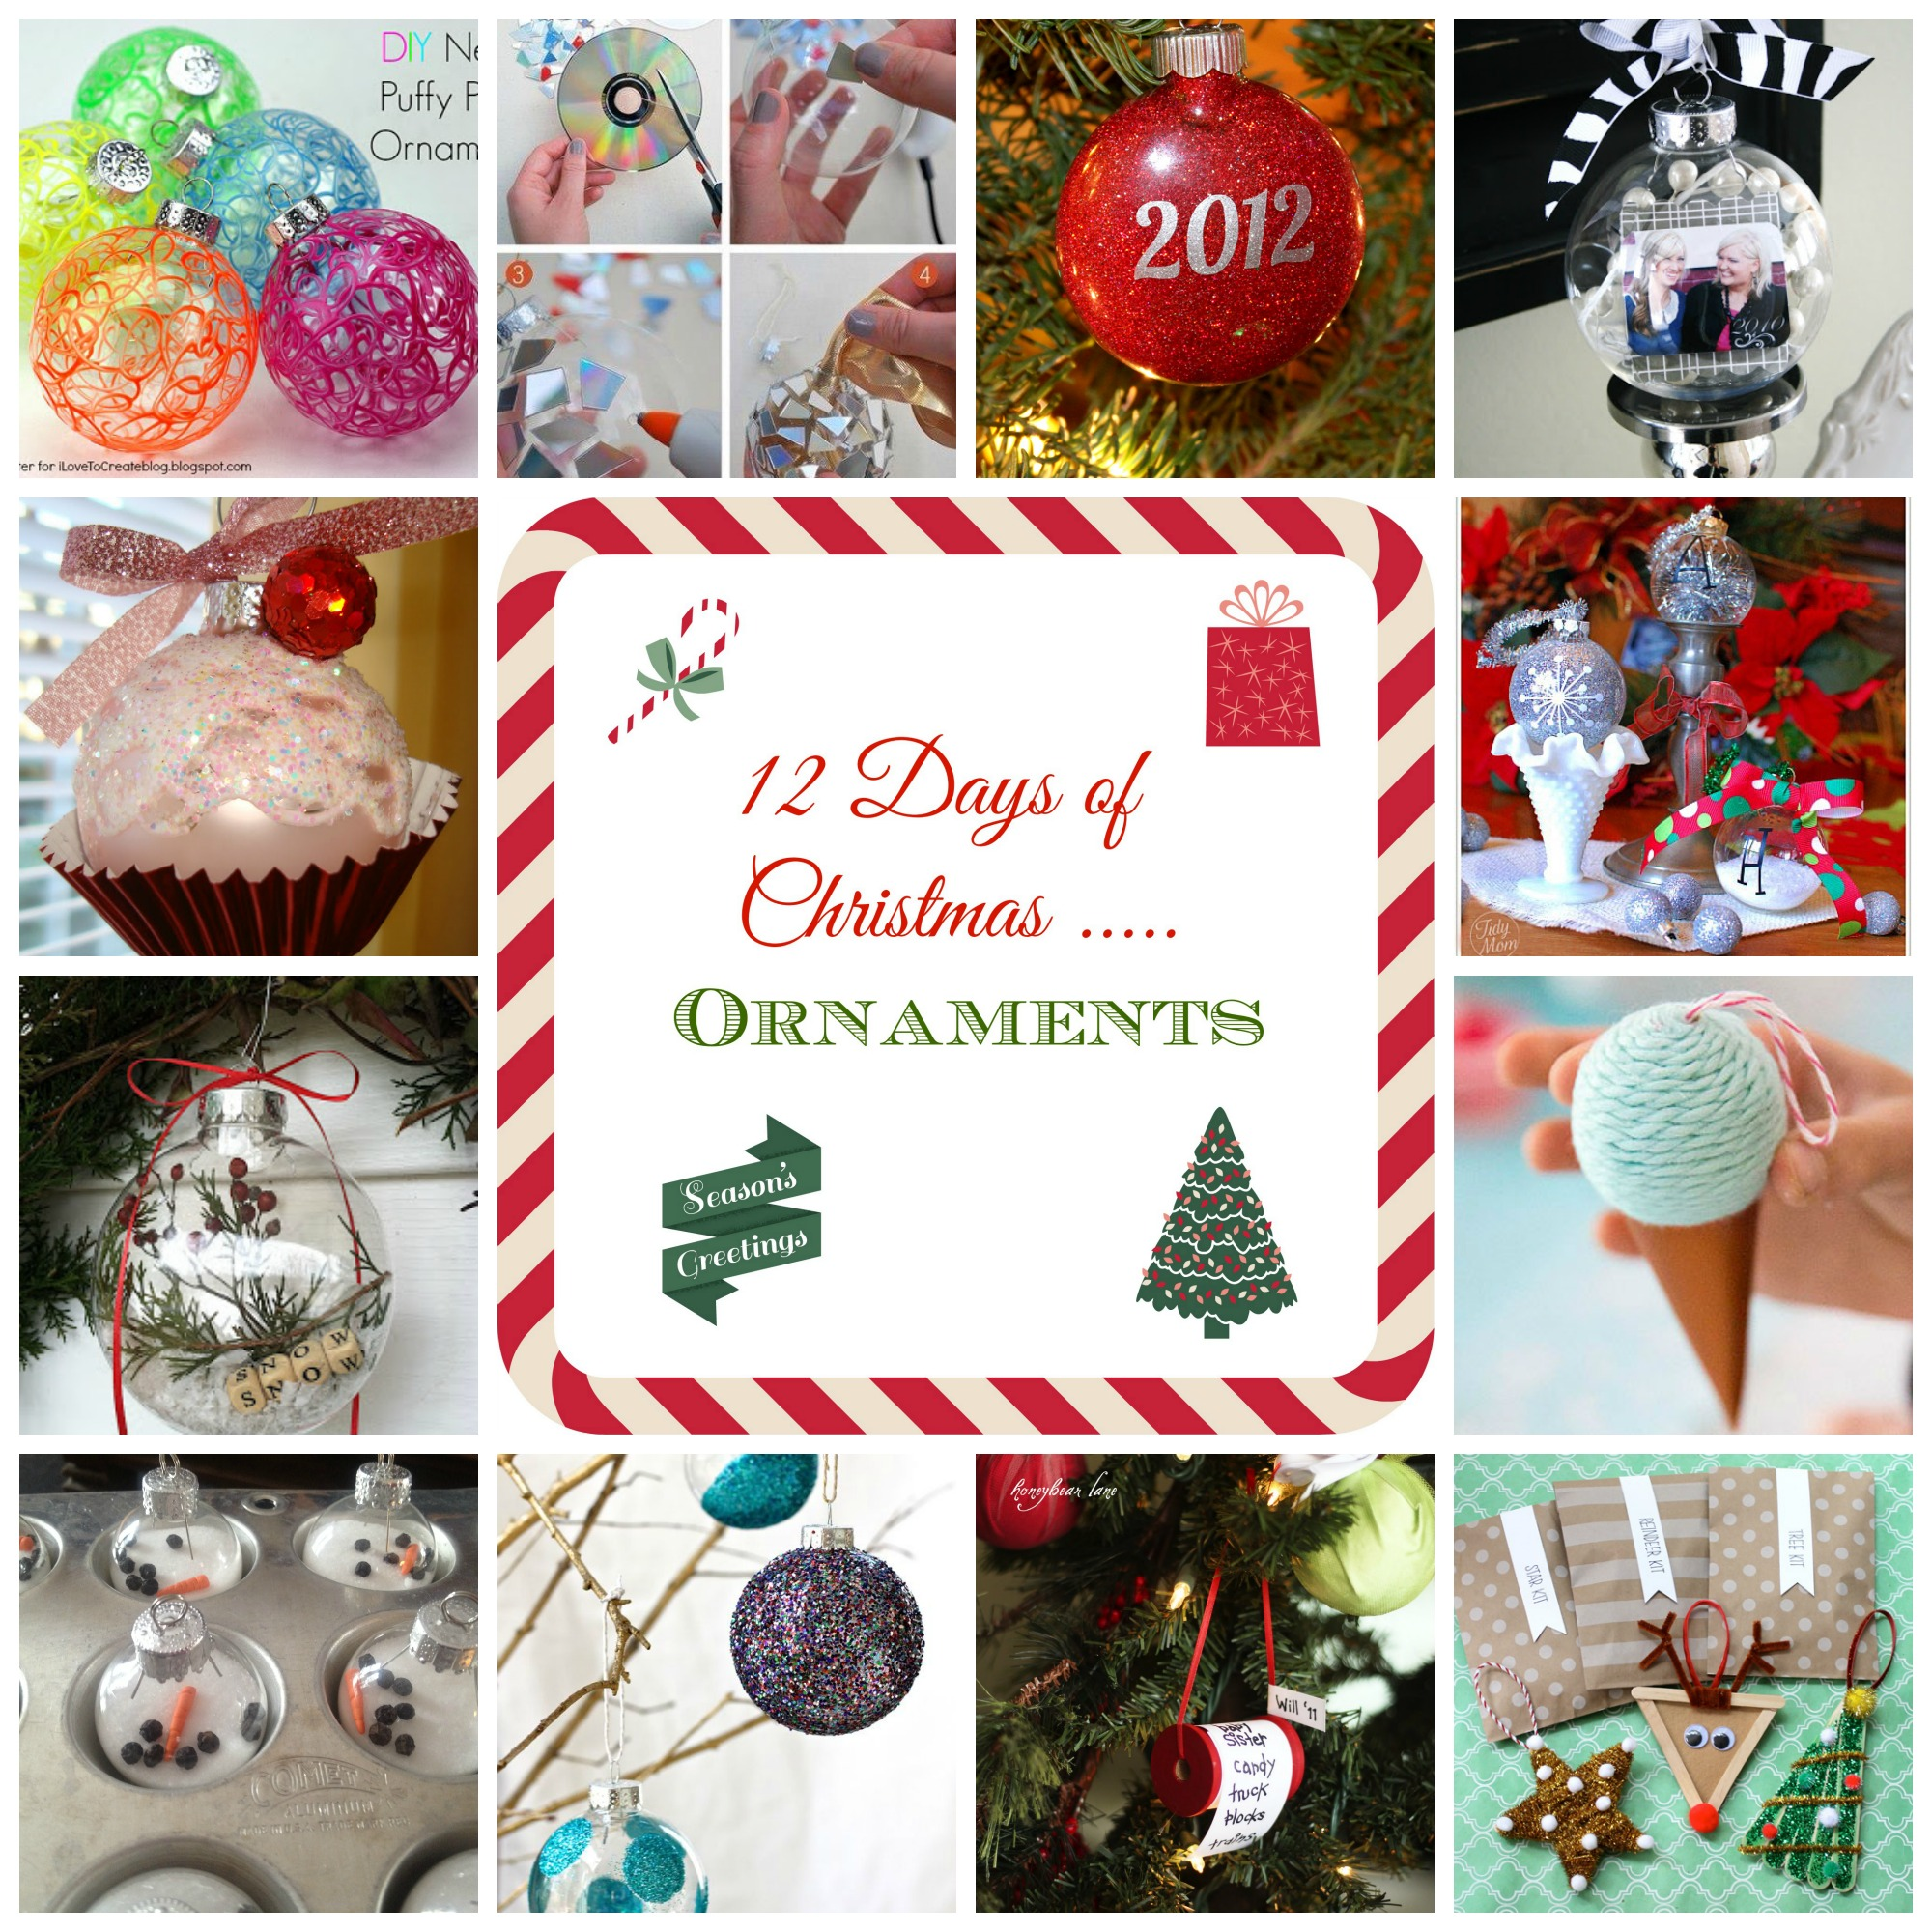 12 Days of Christmas – Ornaments